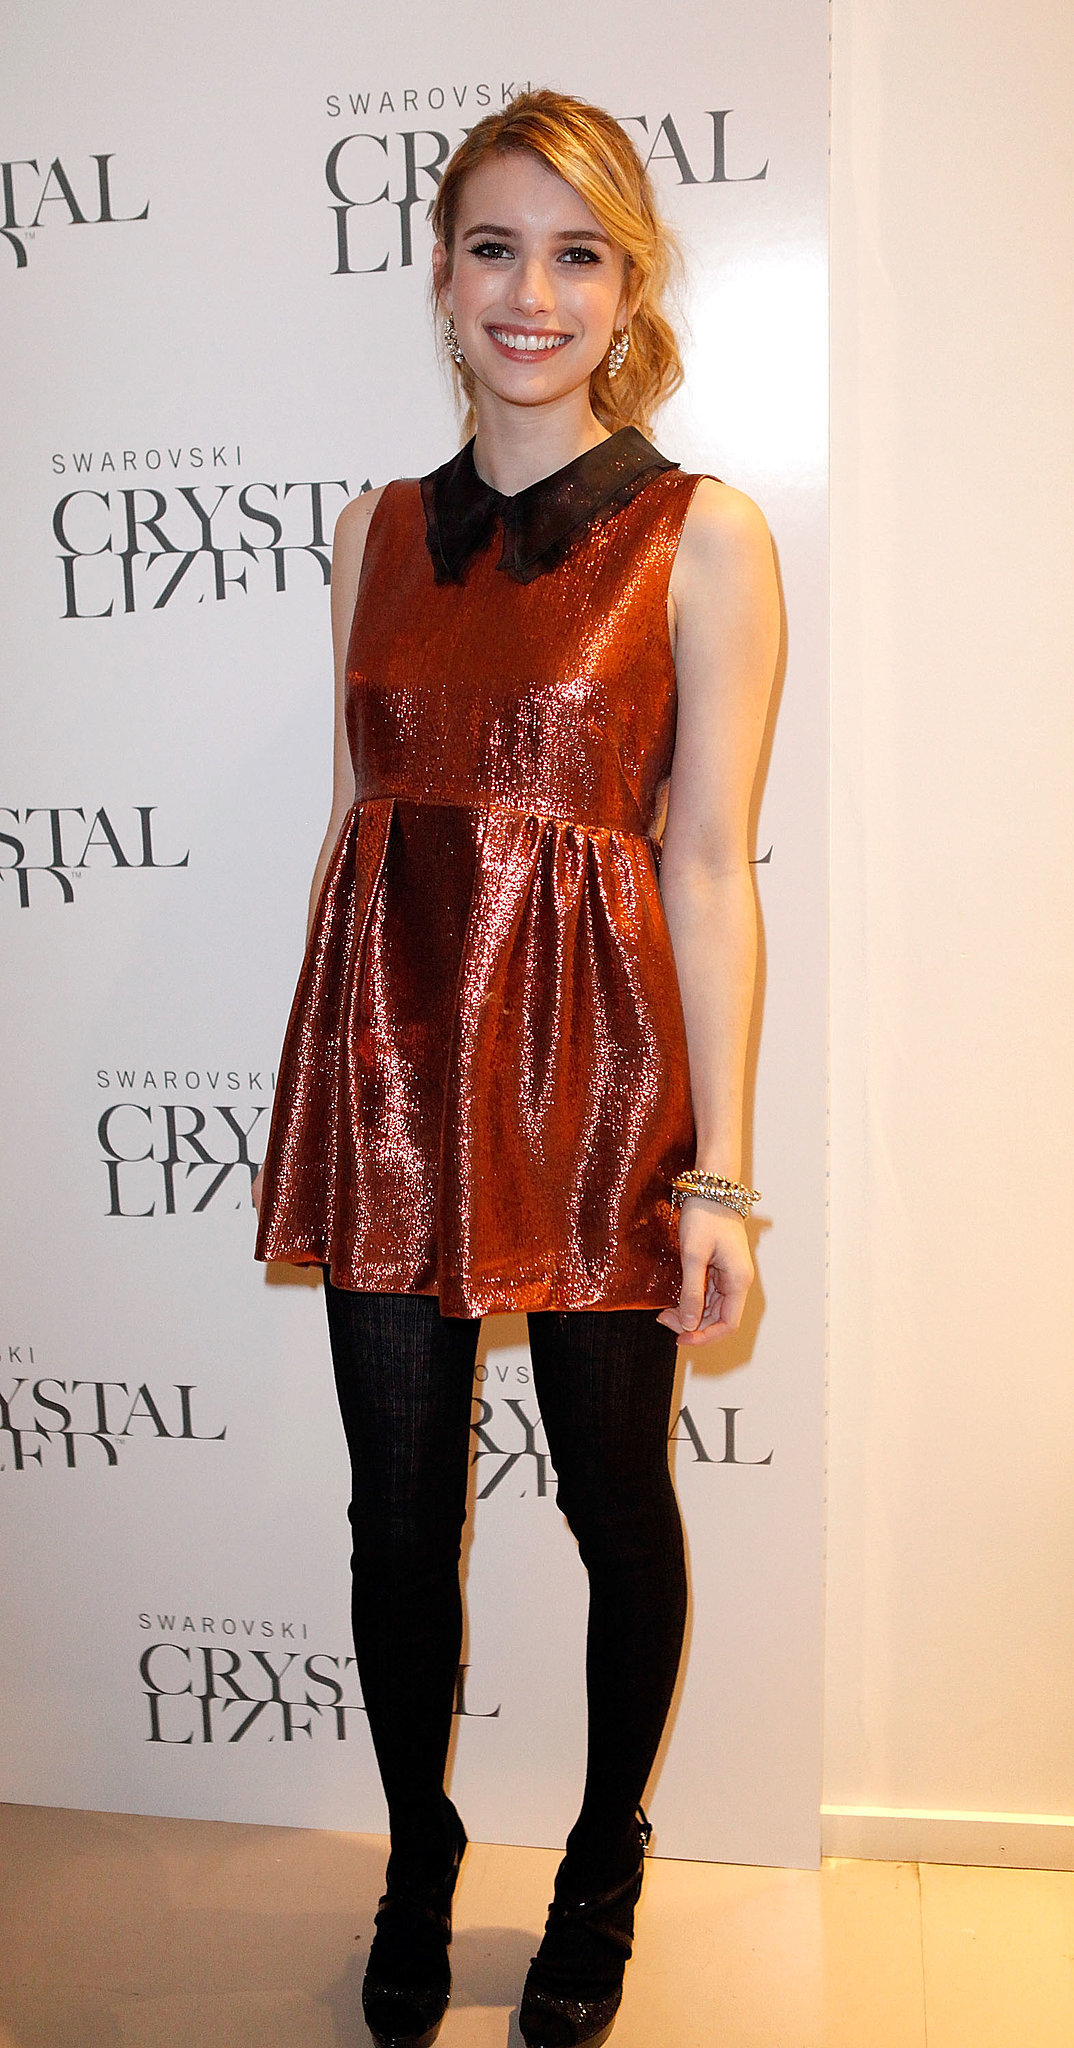 Emma looked every bit the fashion darling in Miu Miu for an event in October 2011.